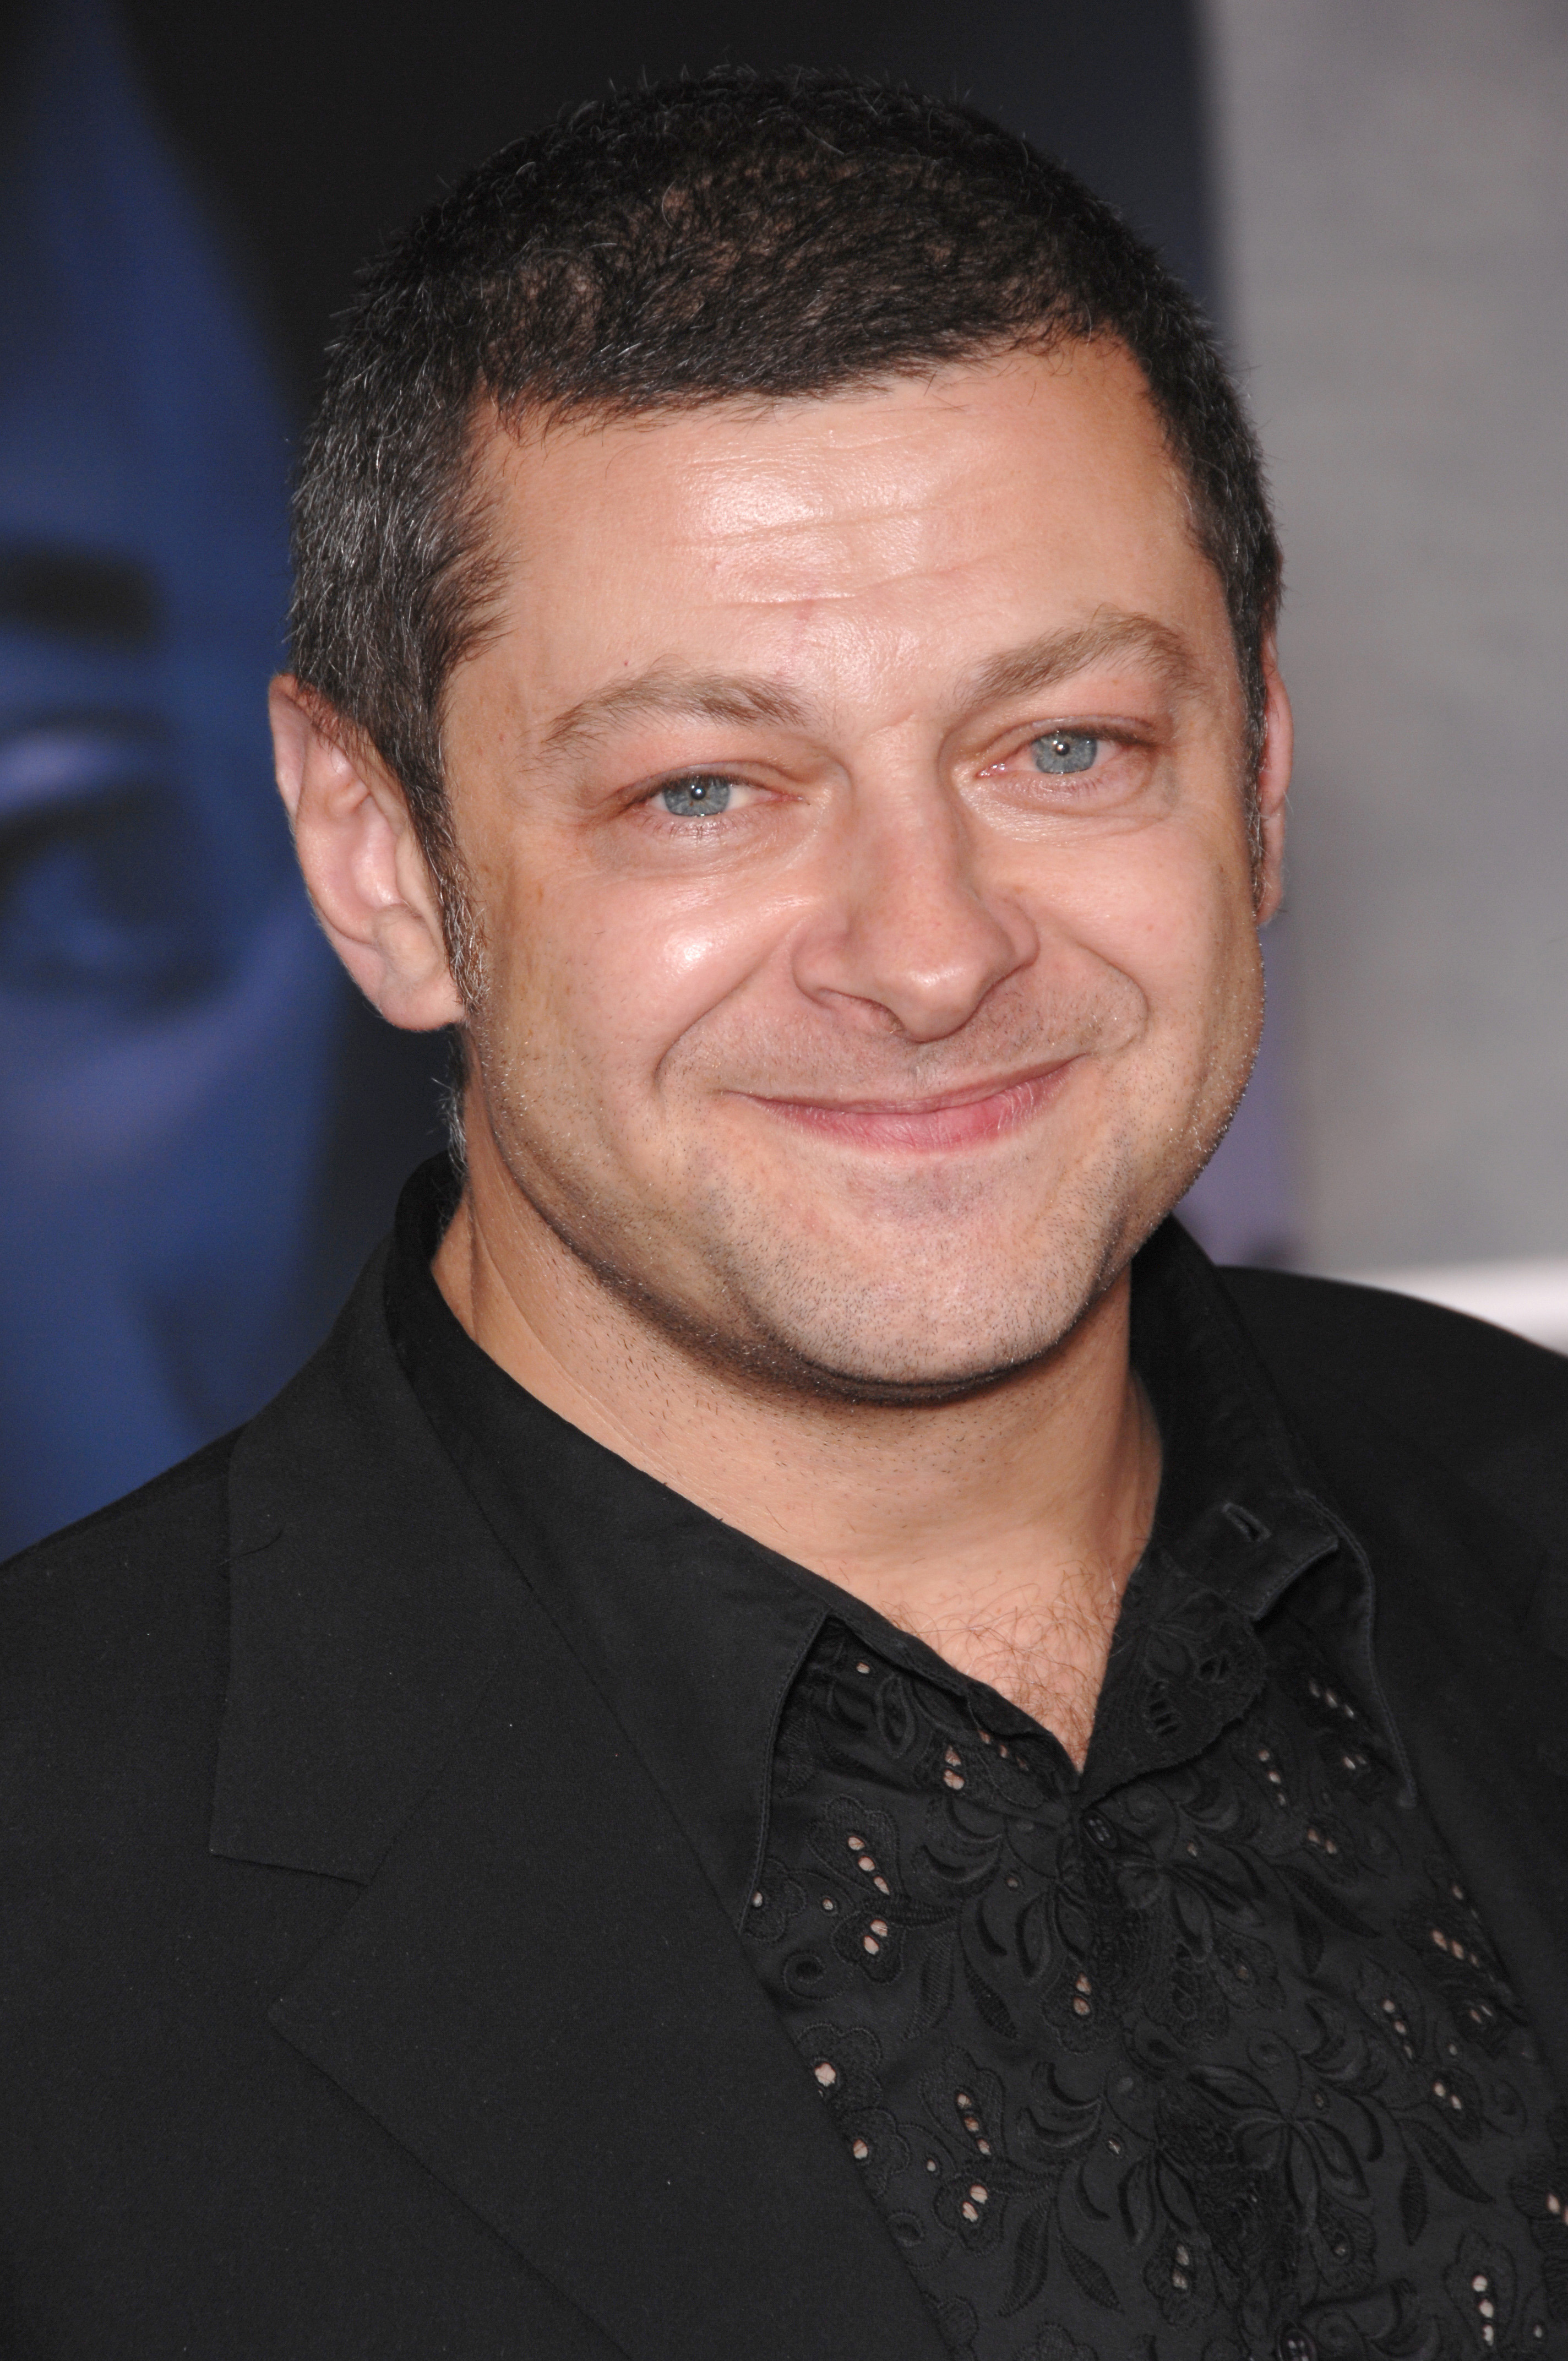 Gollum actor to direct a new Jungle Book movie  MobyLives